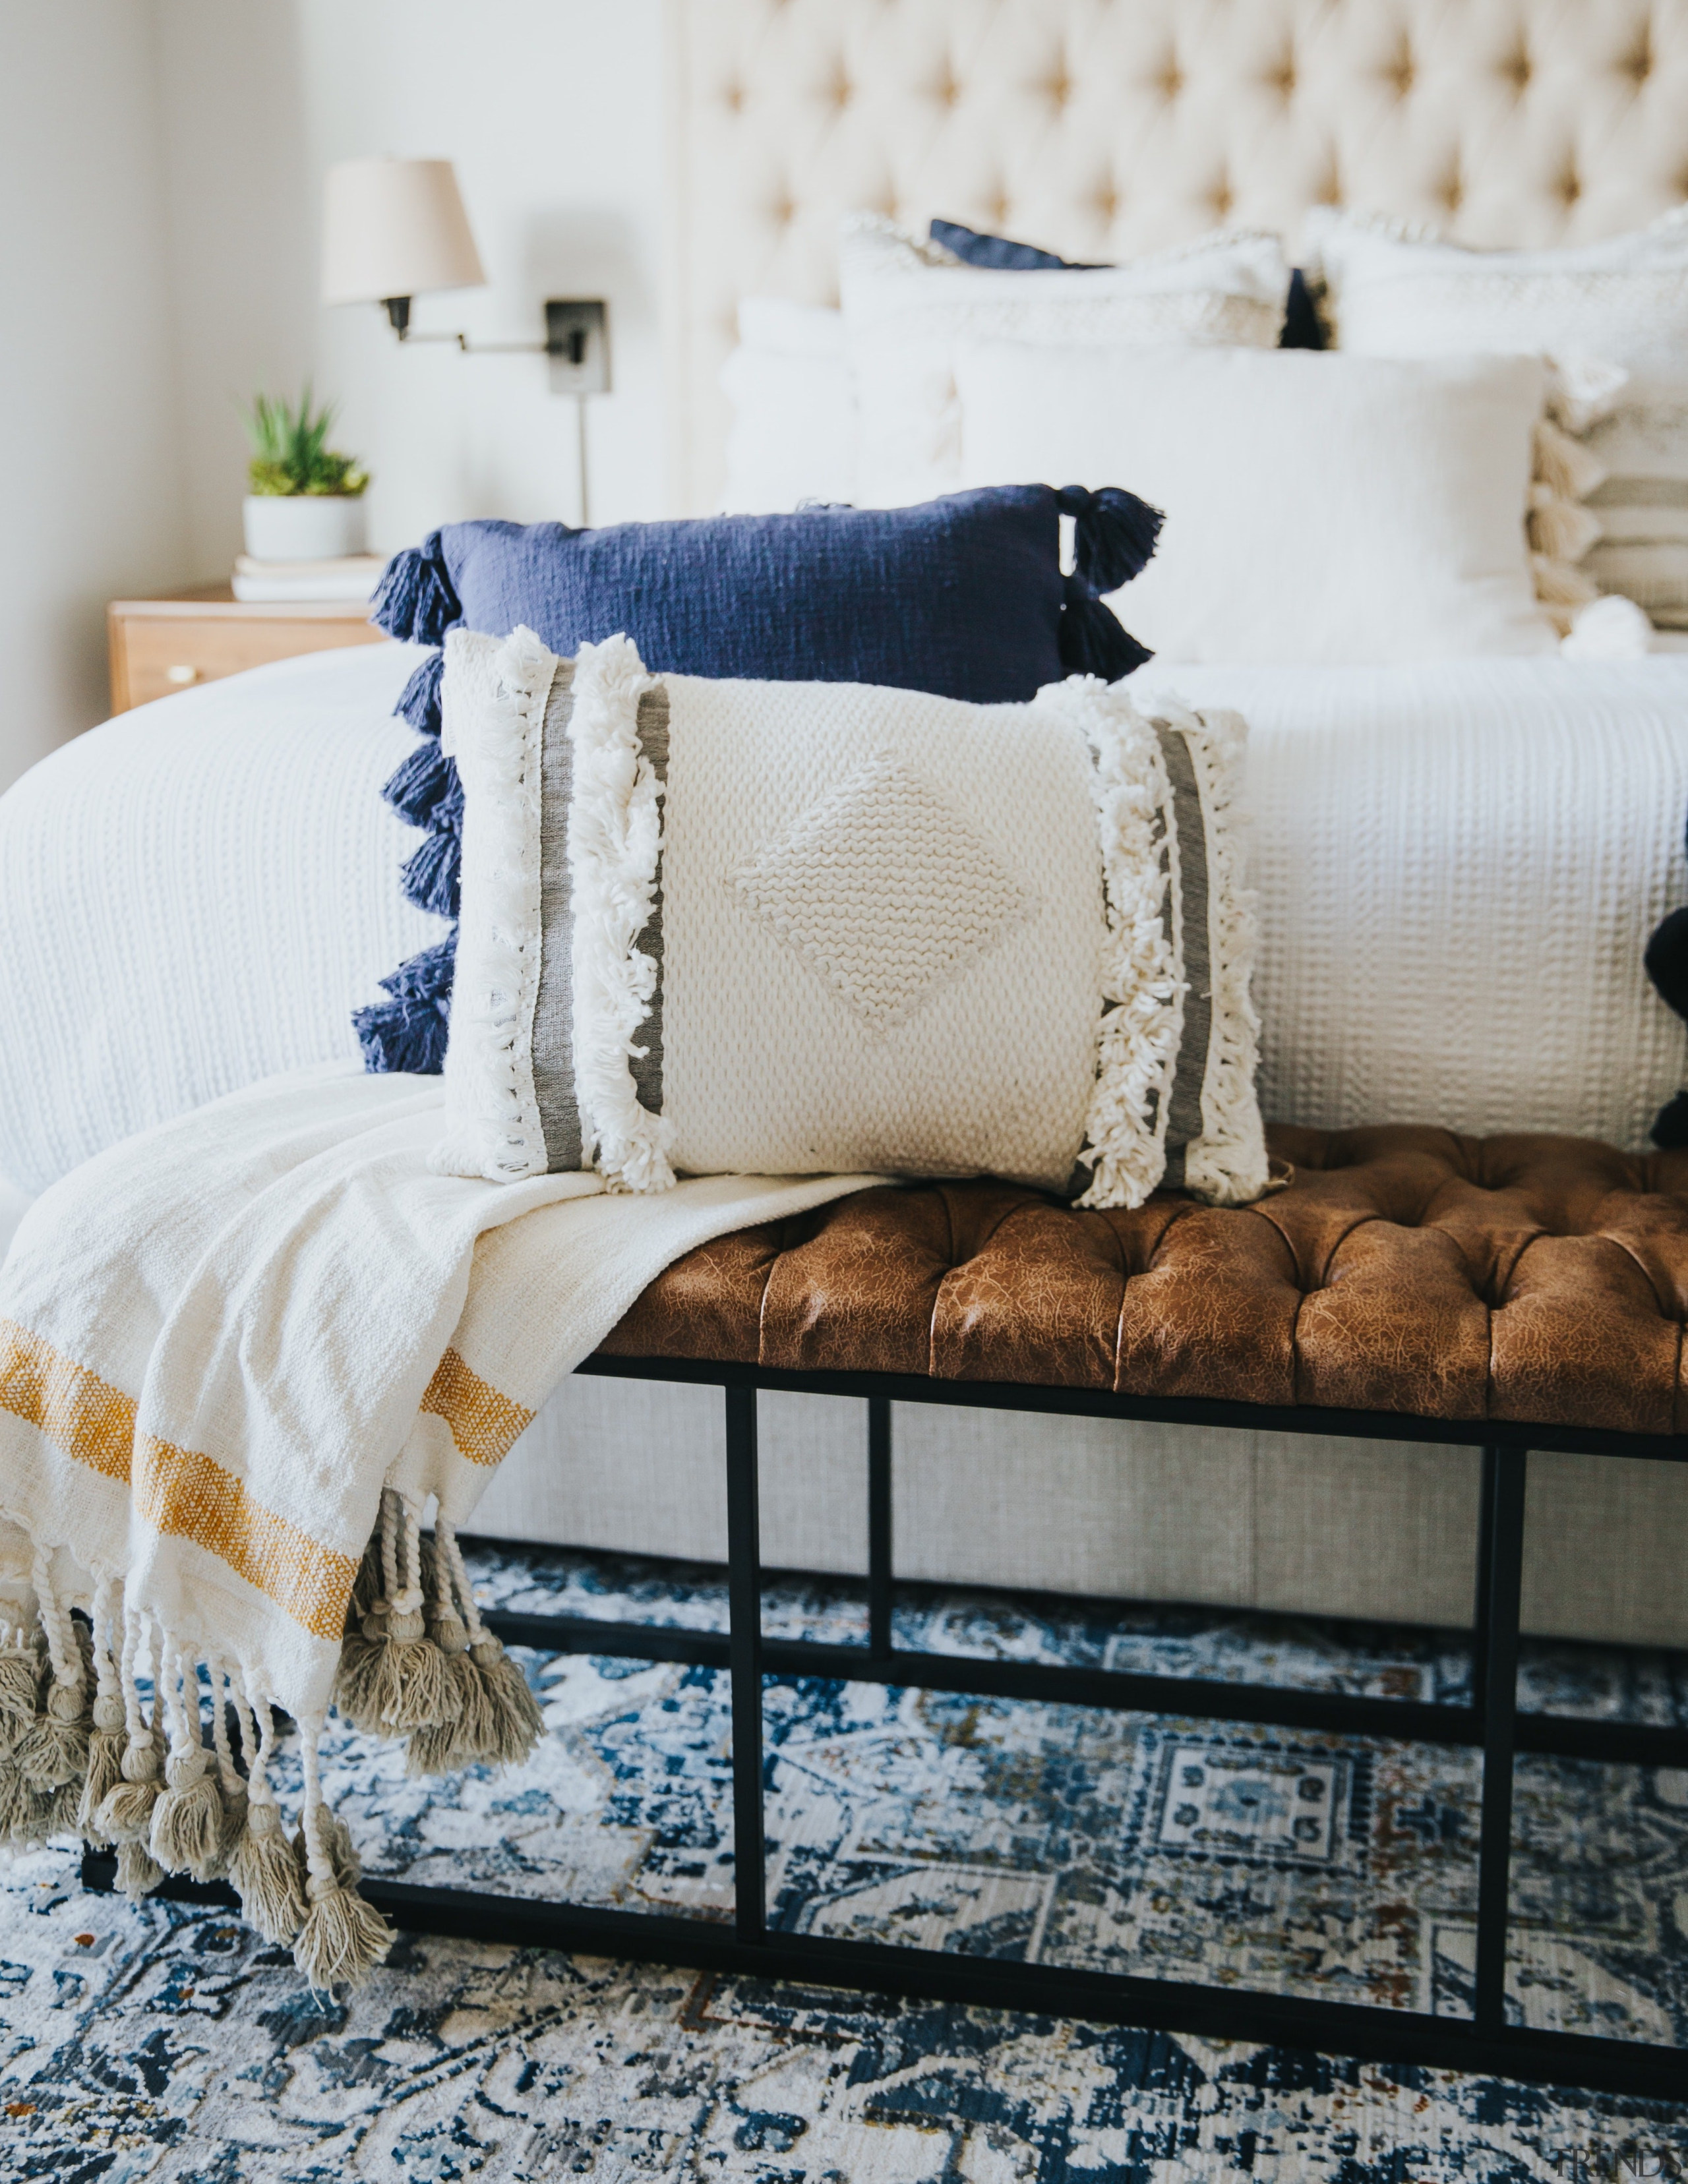 Pillows and throw in bedroom -